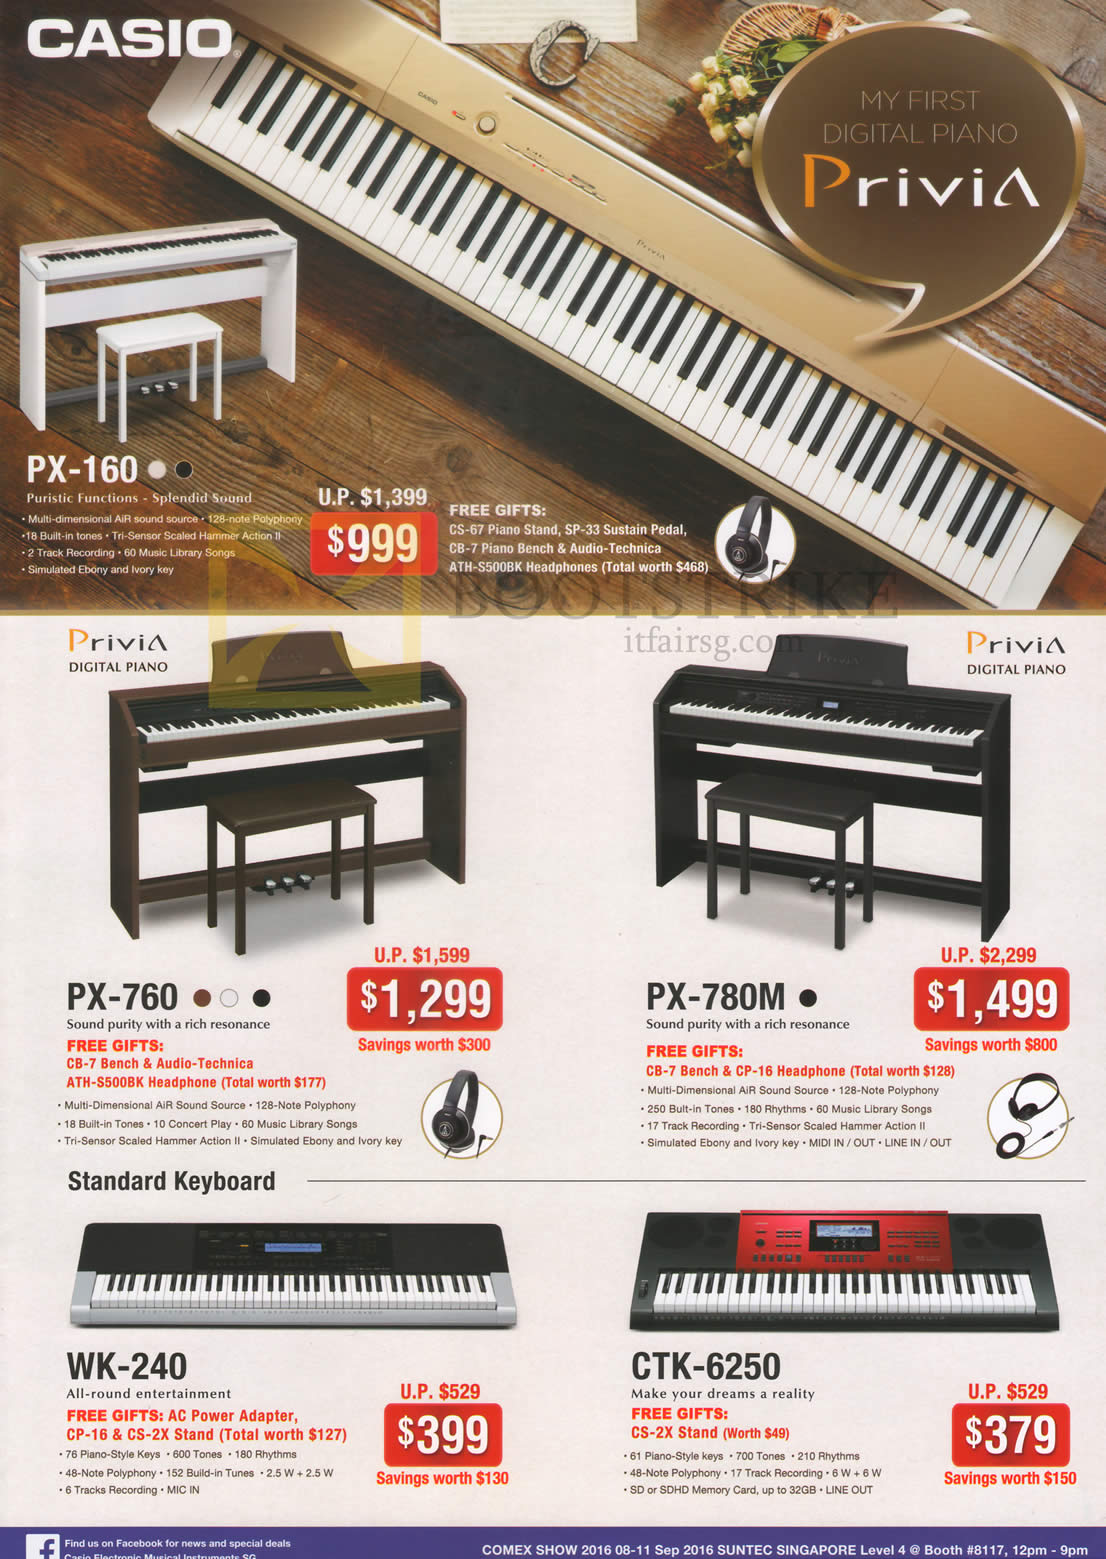 COMEX 2016 price list image brochure of Casio Music Keyboards PX-160, 760, 780M, WK-240, CTK-6250